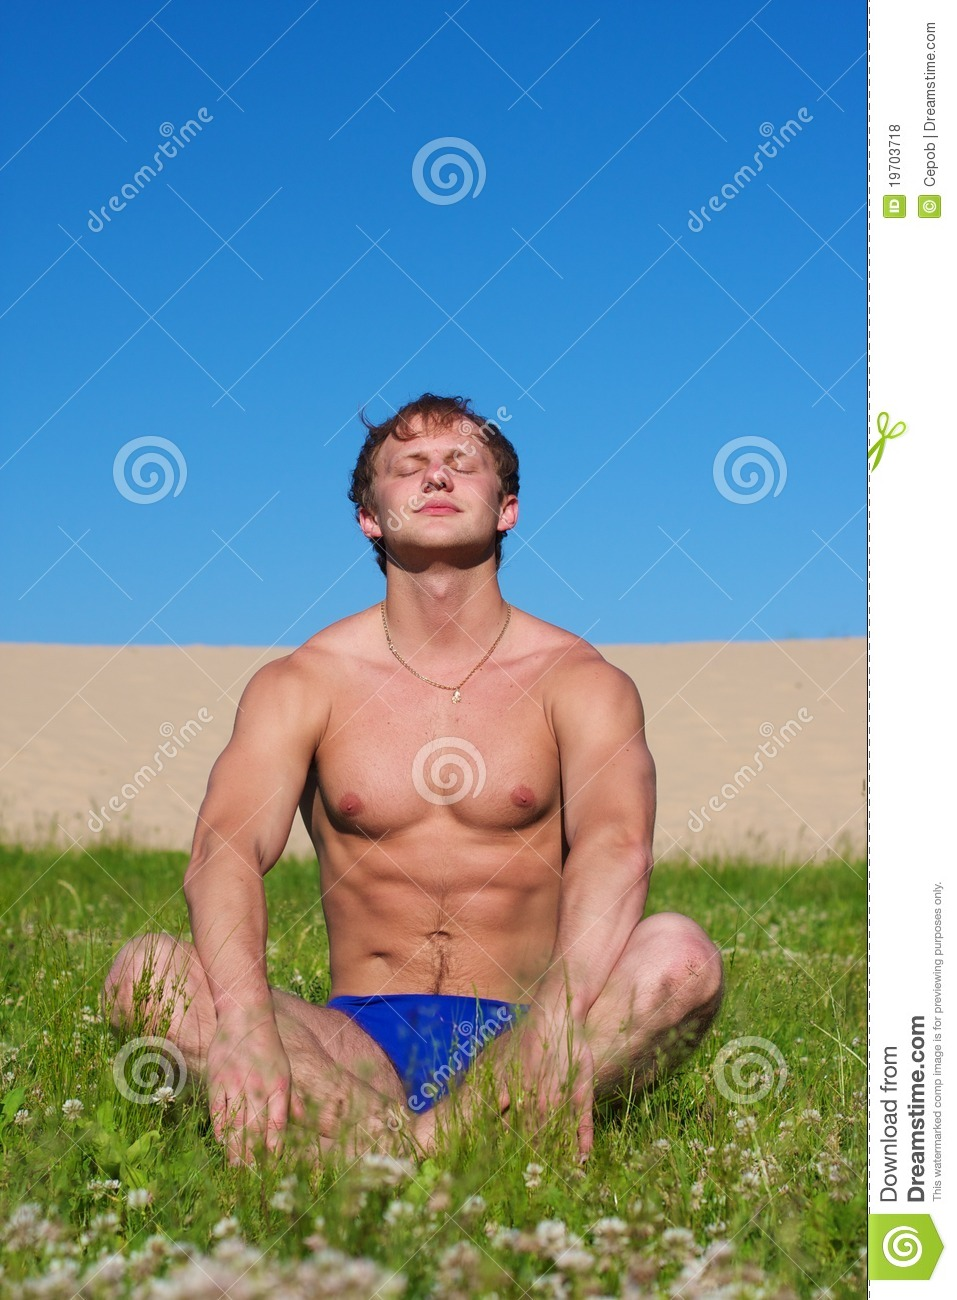 Young Man Shirtless Outdoors Hiking With Backpack On